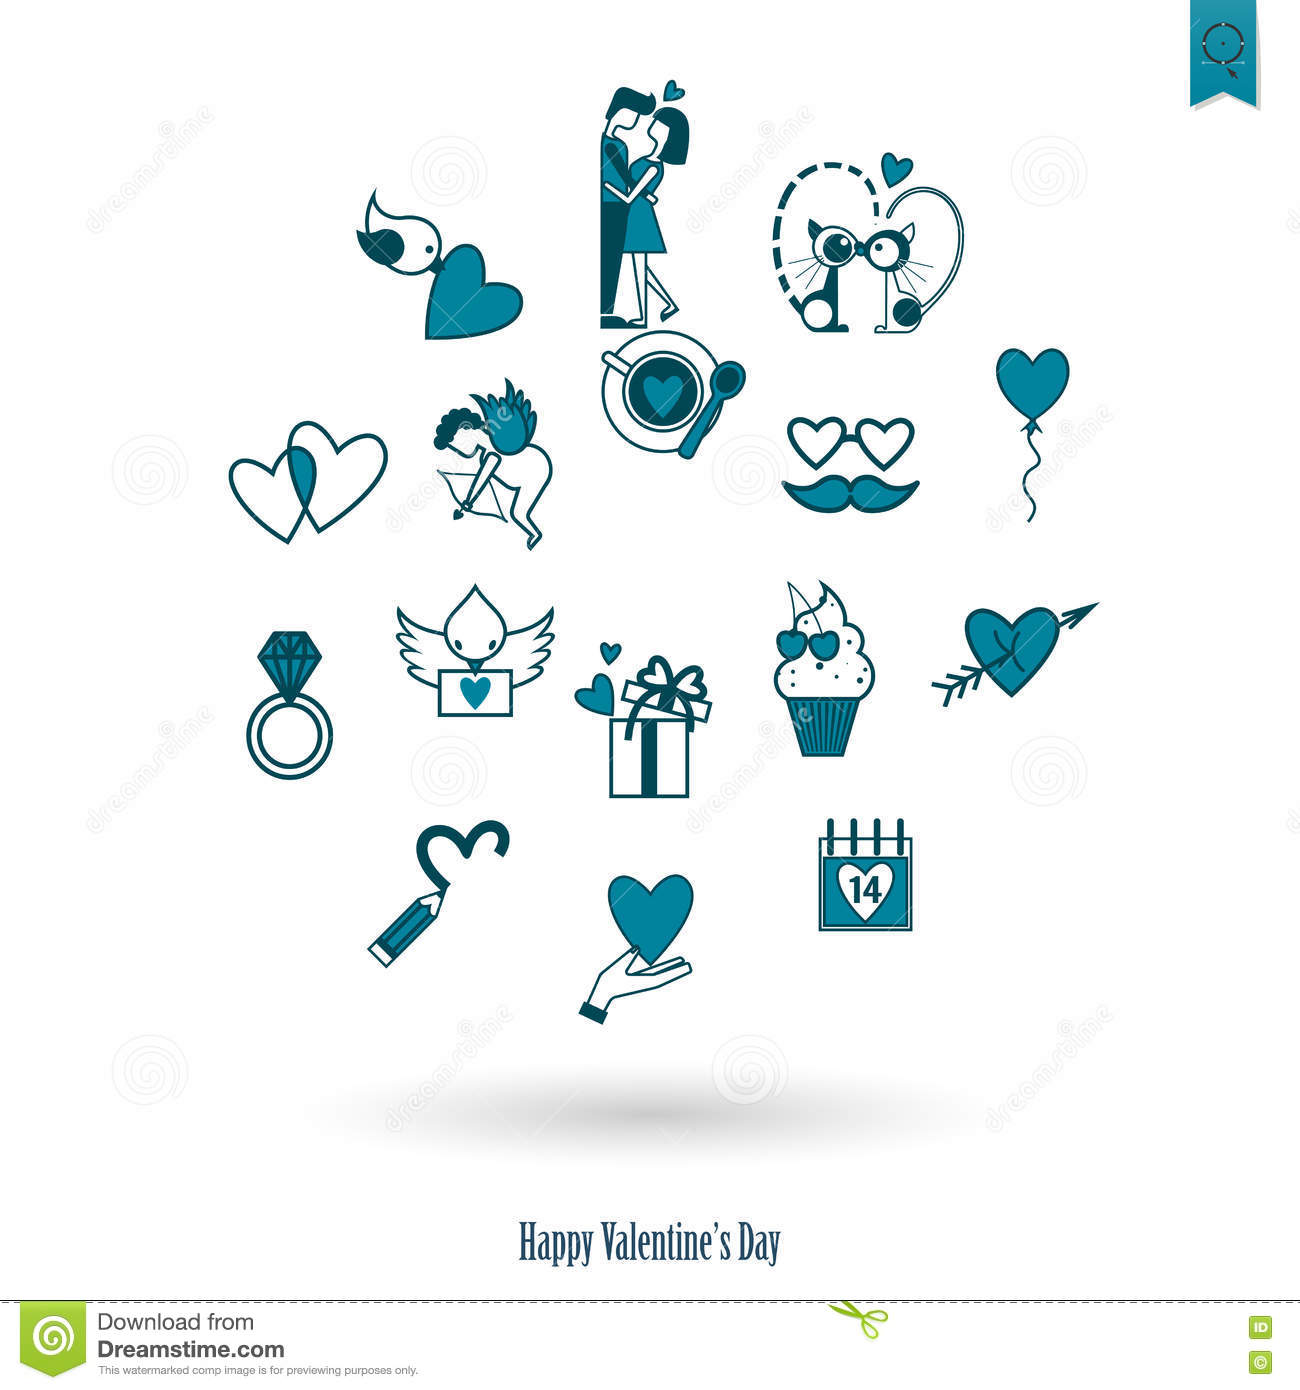 Happy Valentines Day Icons Stock Vector Illustration Of Element